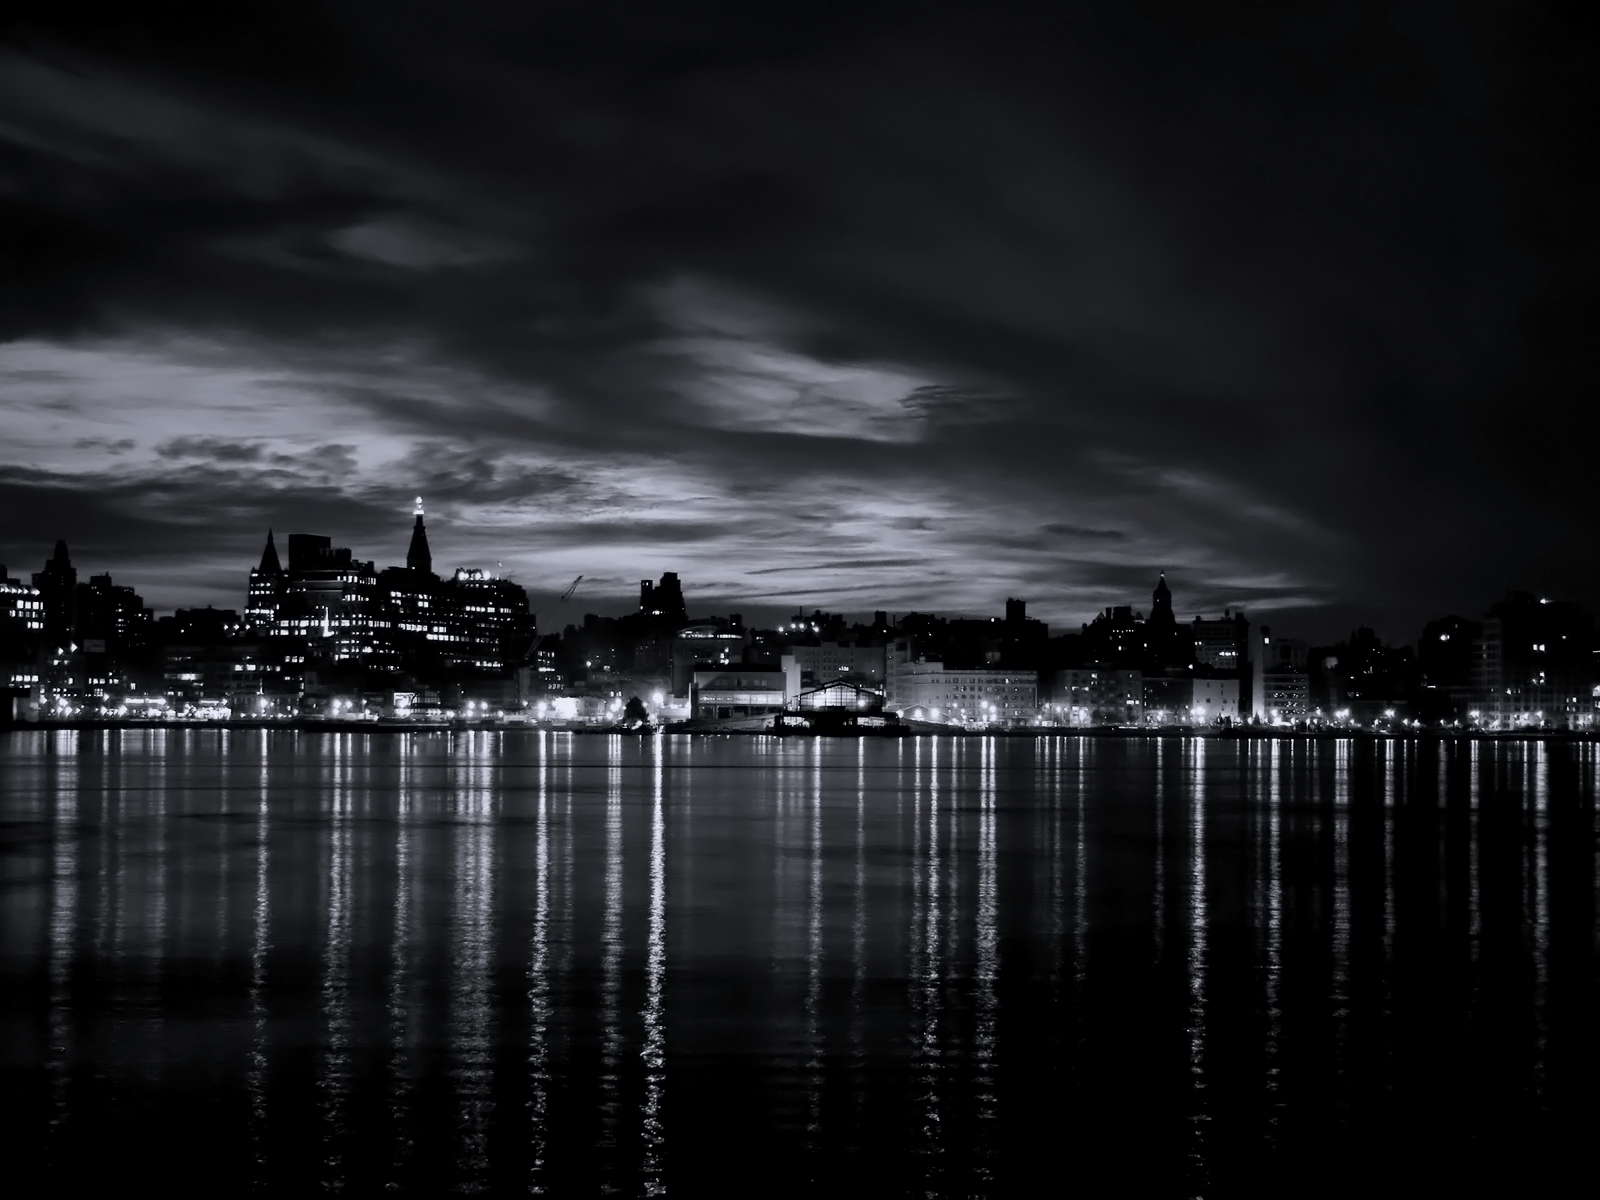 Black and White River City Light wallpaper 1600x1200